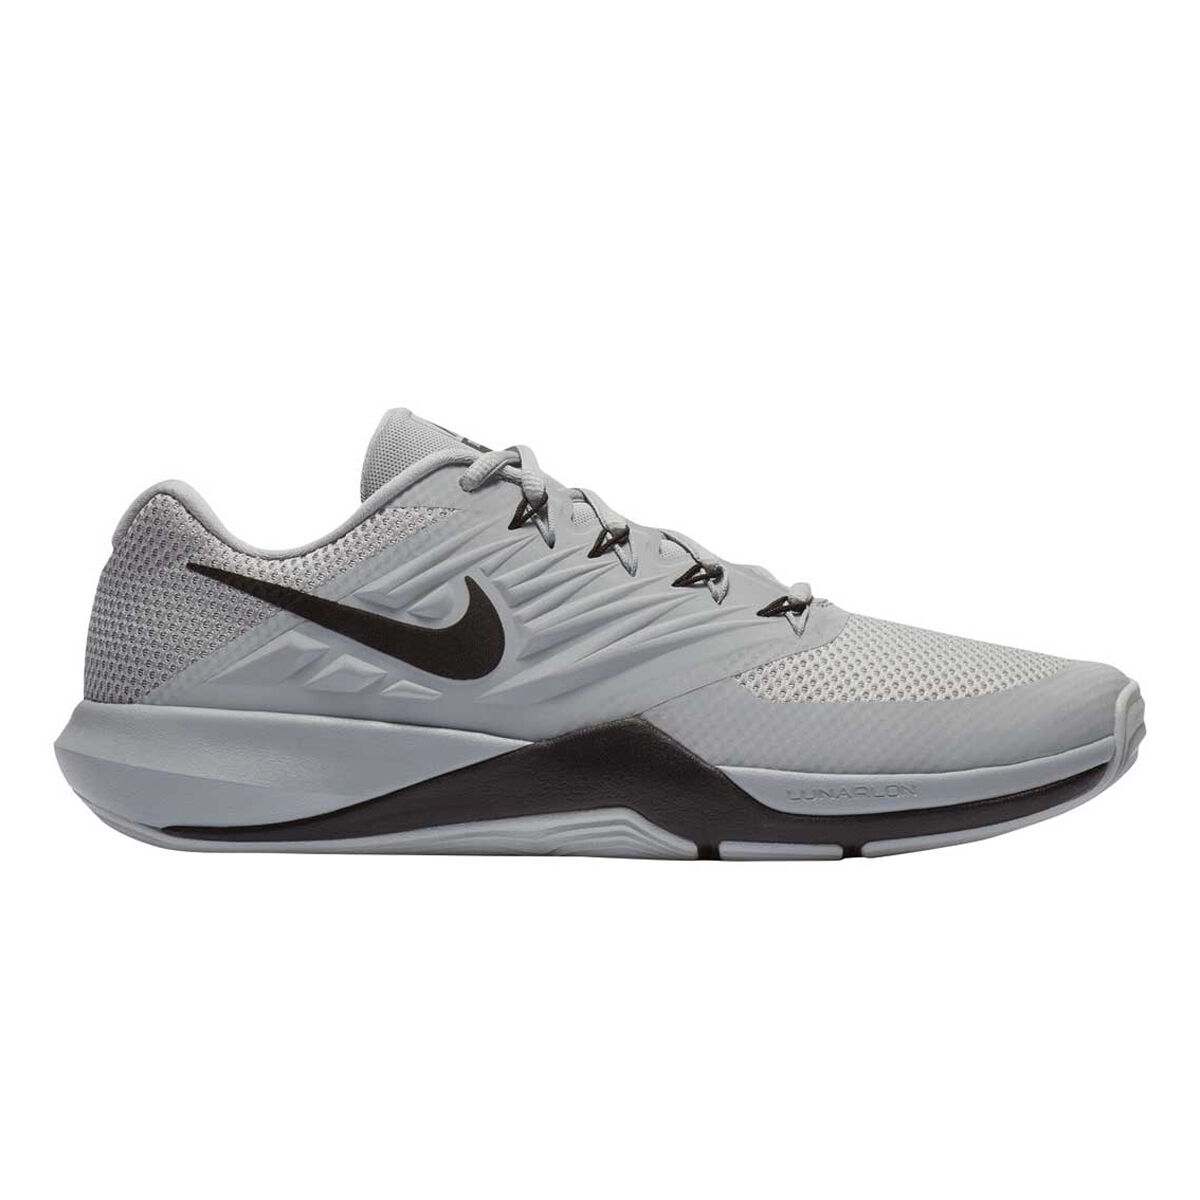 Nike Lunar Prime Iron II Mens Training Shoes Grey Black US 10